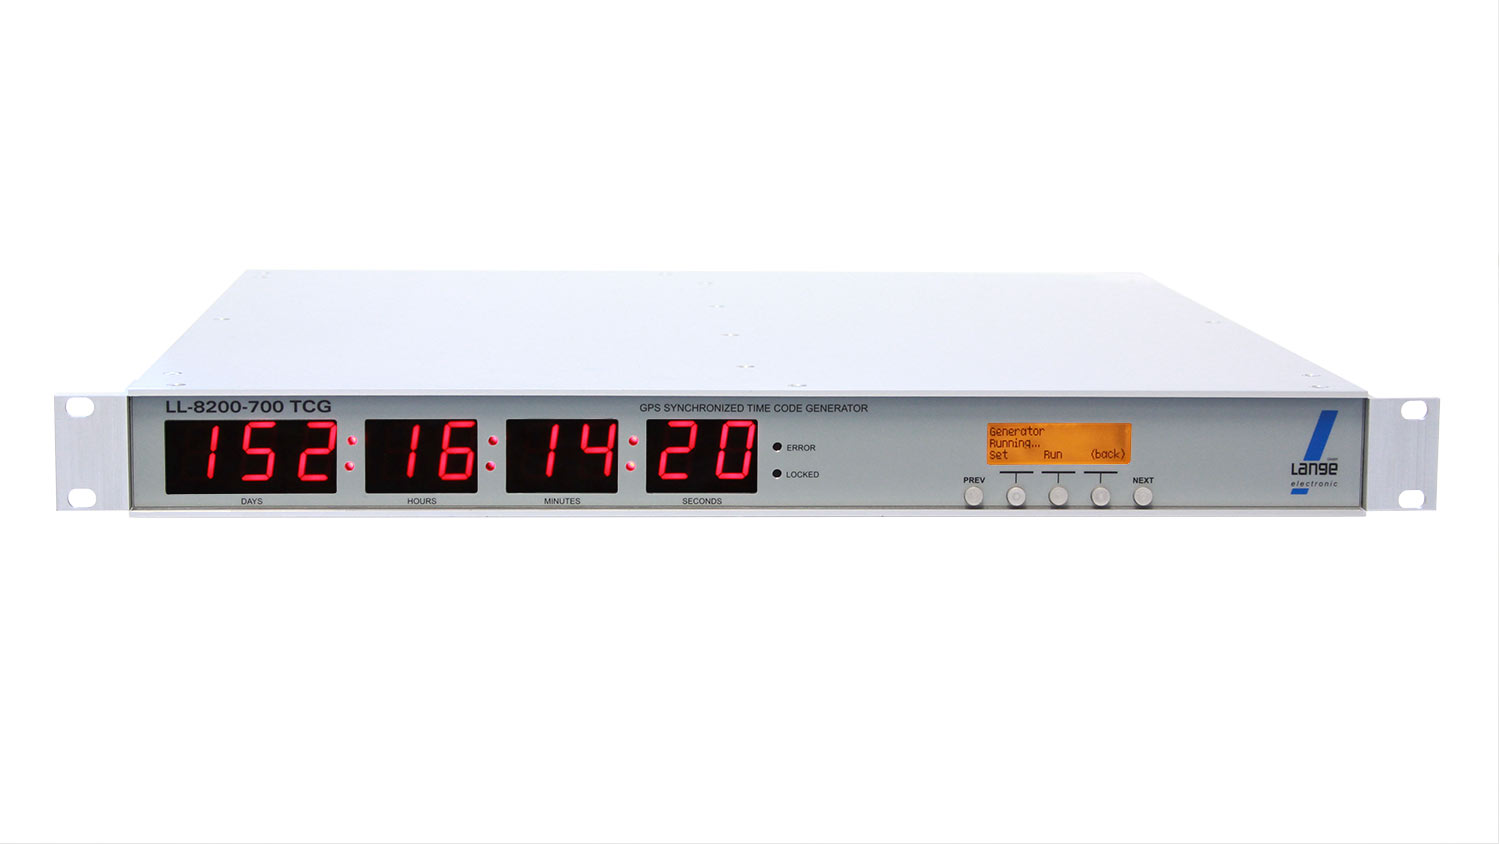 LL-8200-700 Time Code System